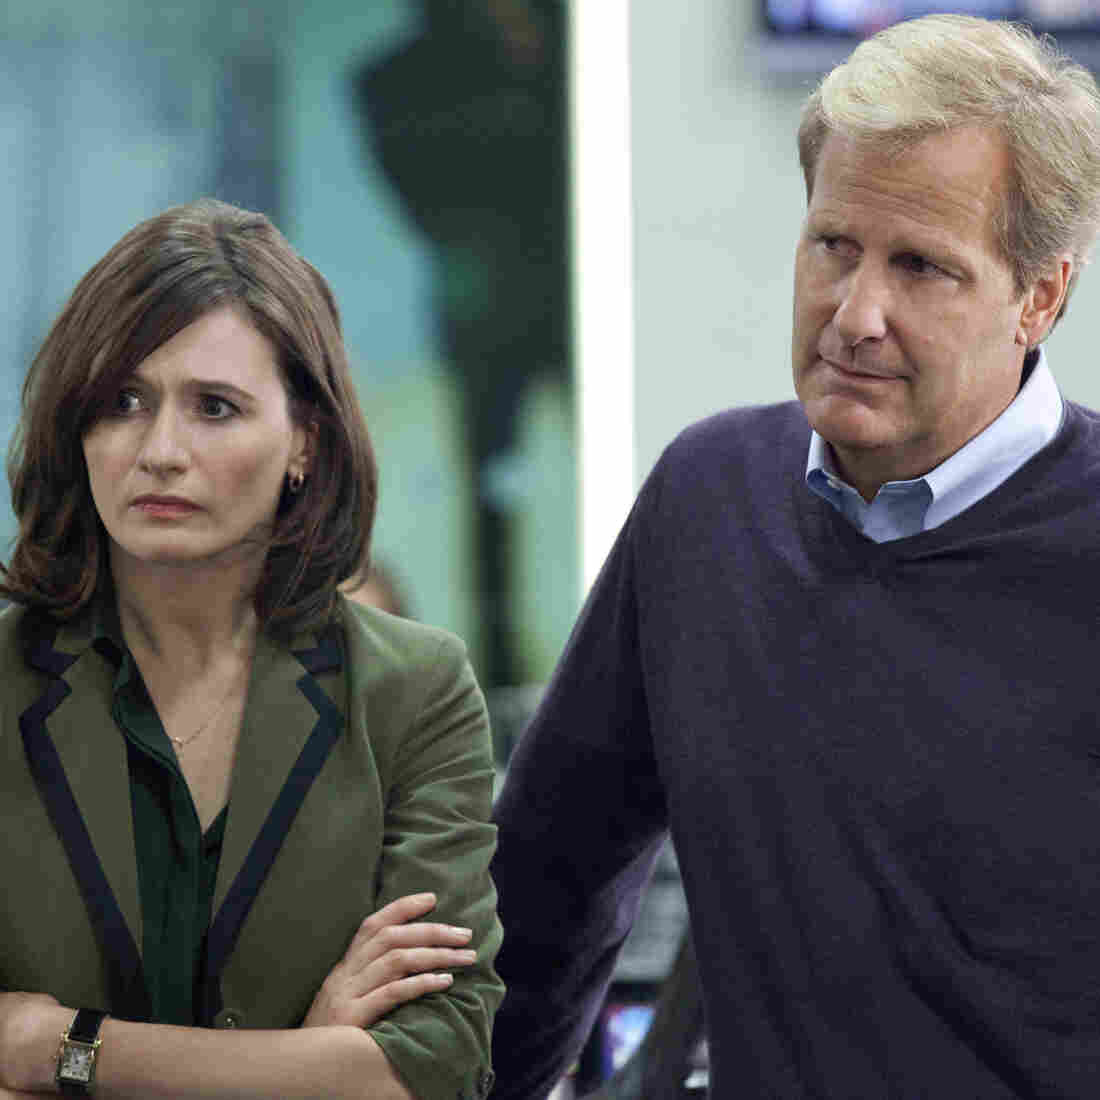 'The Newsroom' Caught Up In A Partisan Divide